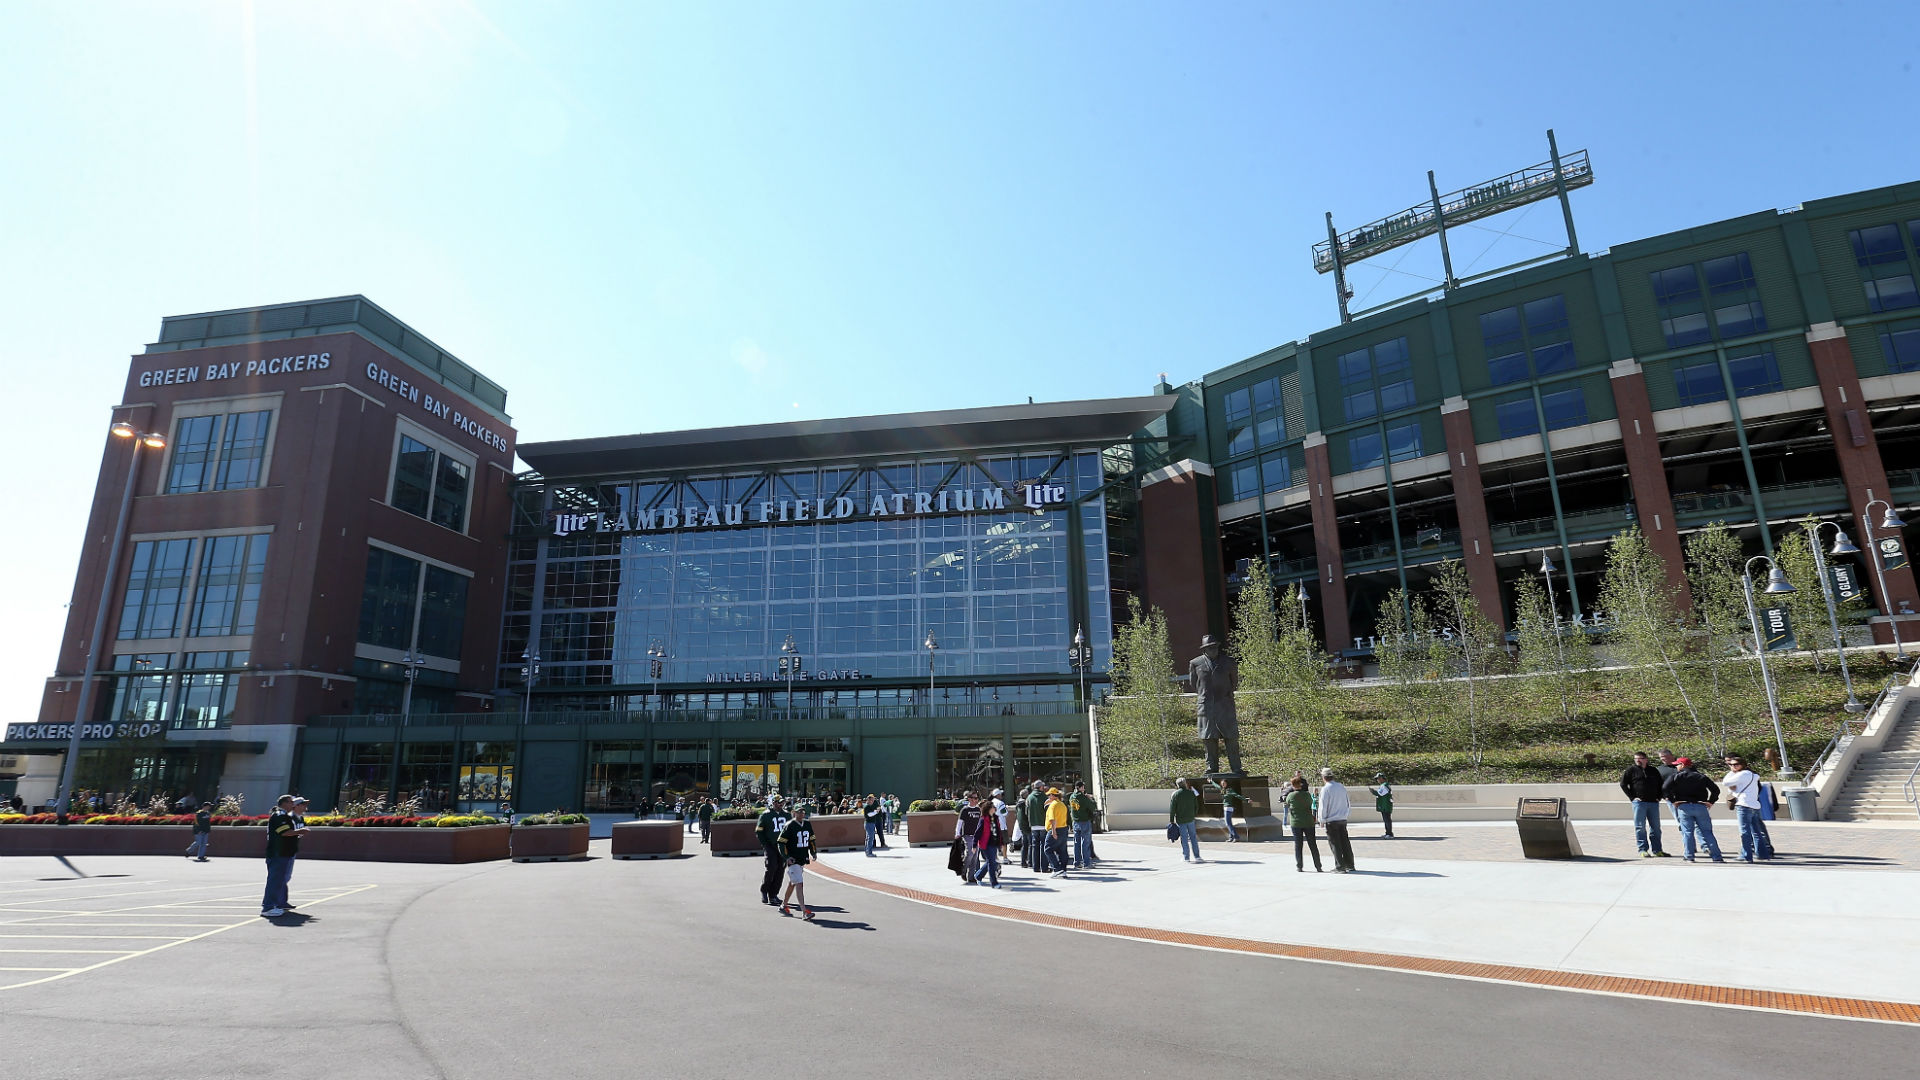 Police: One person in custody after multiple vehicles hit at Lambeau Field